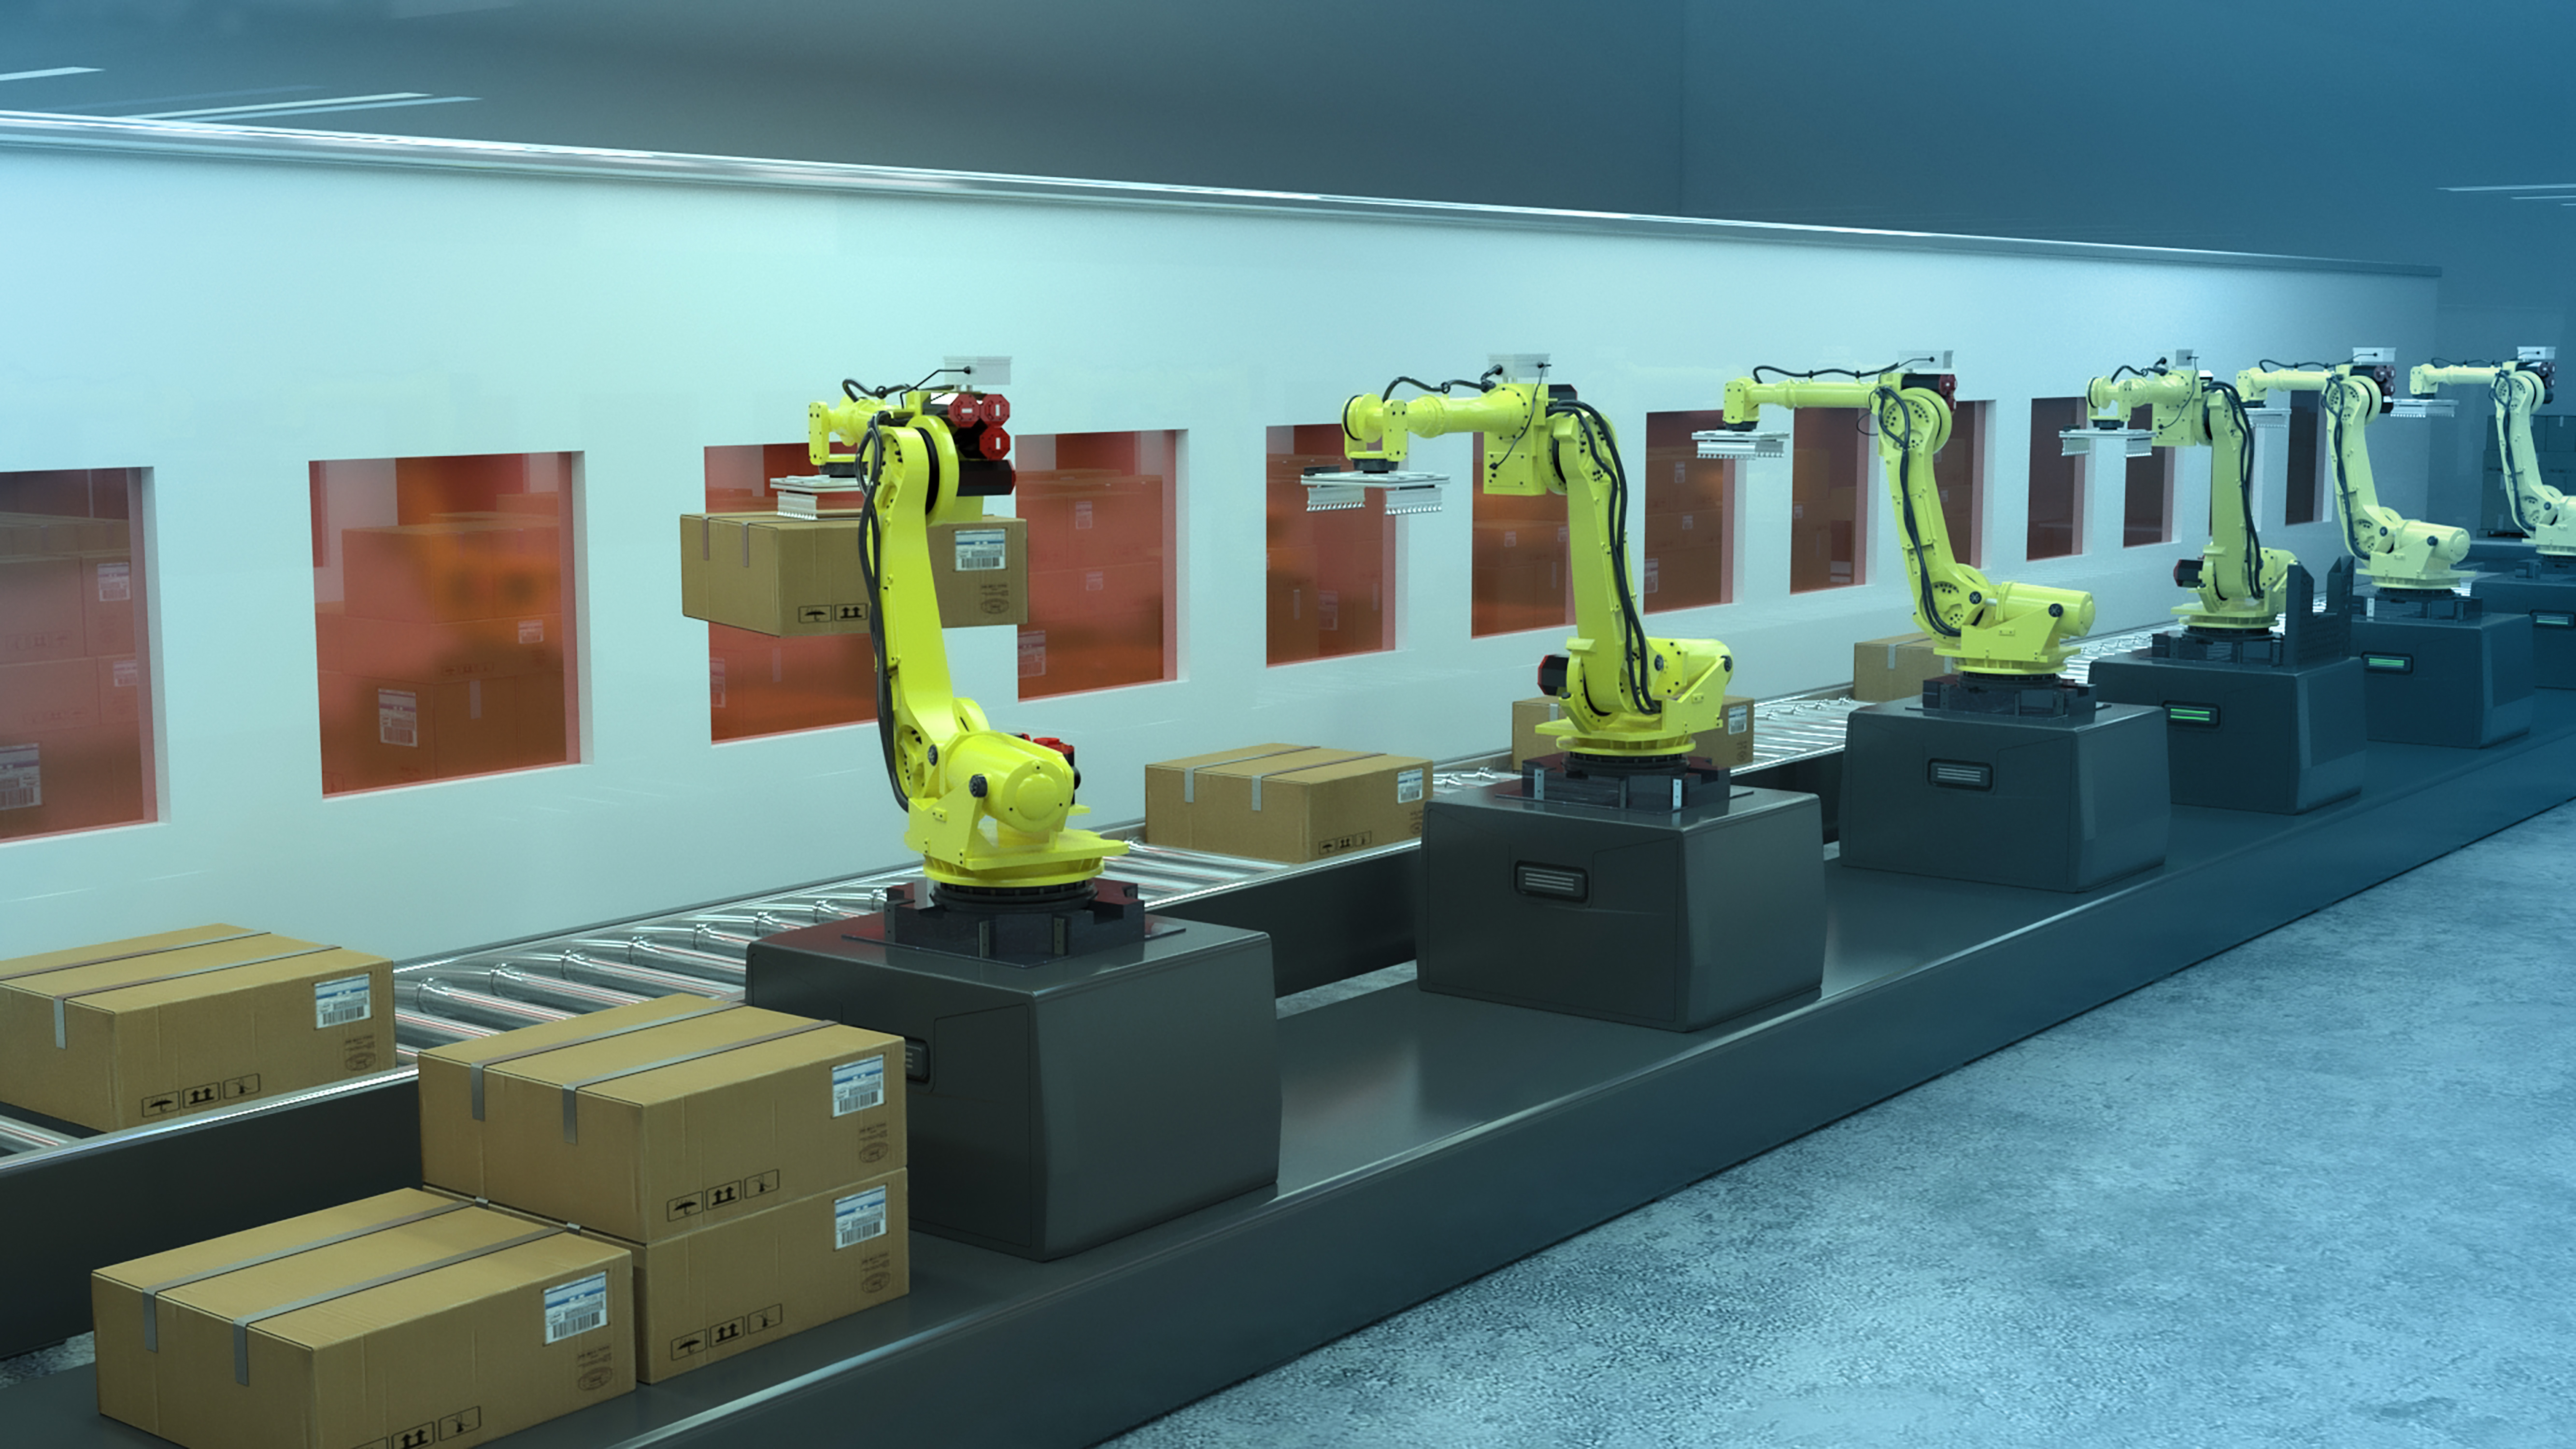 Laser Safety Windows for Manufacturing